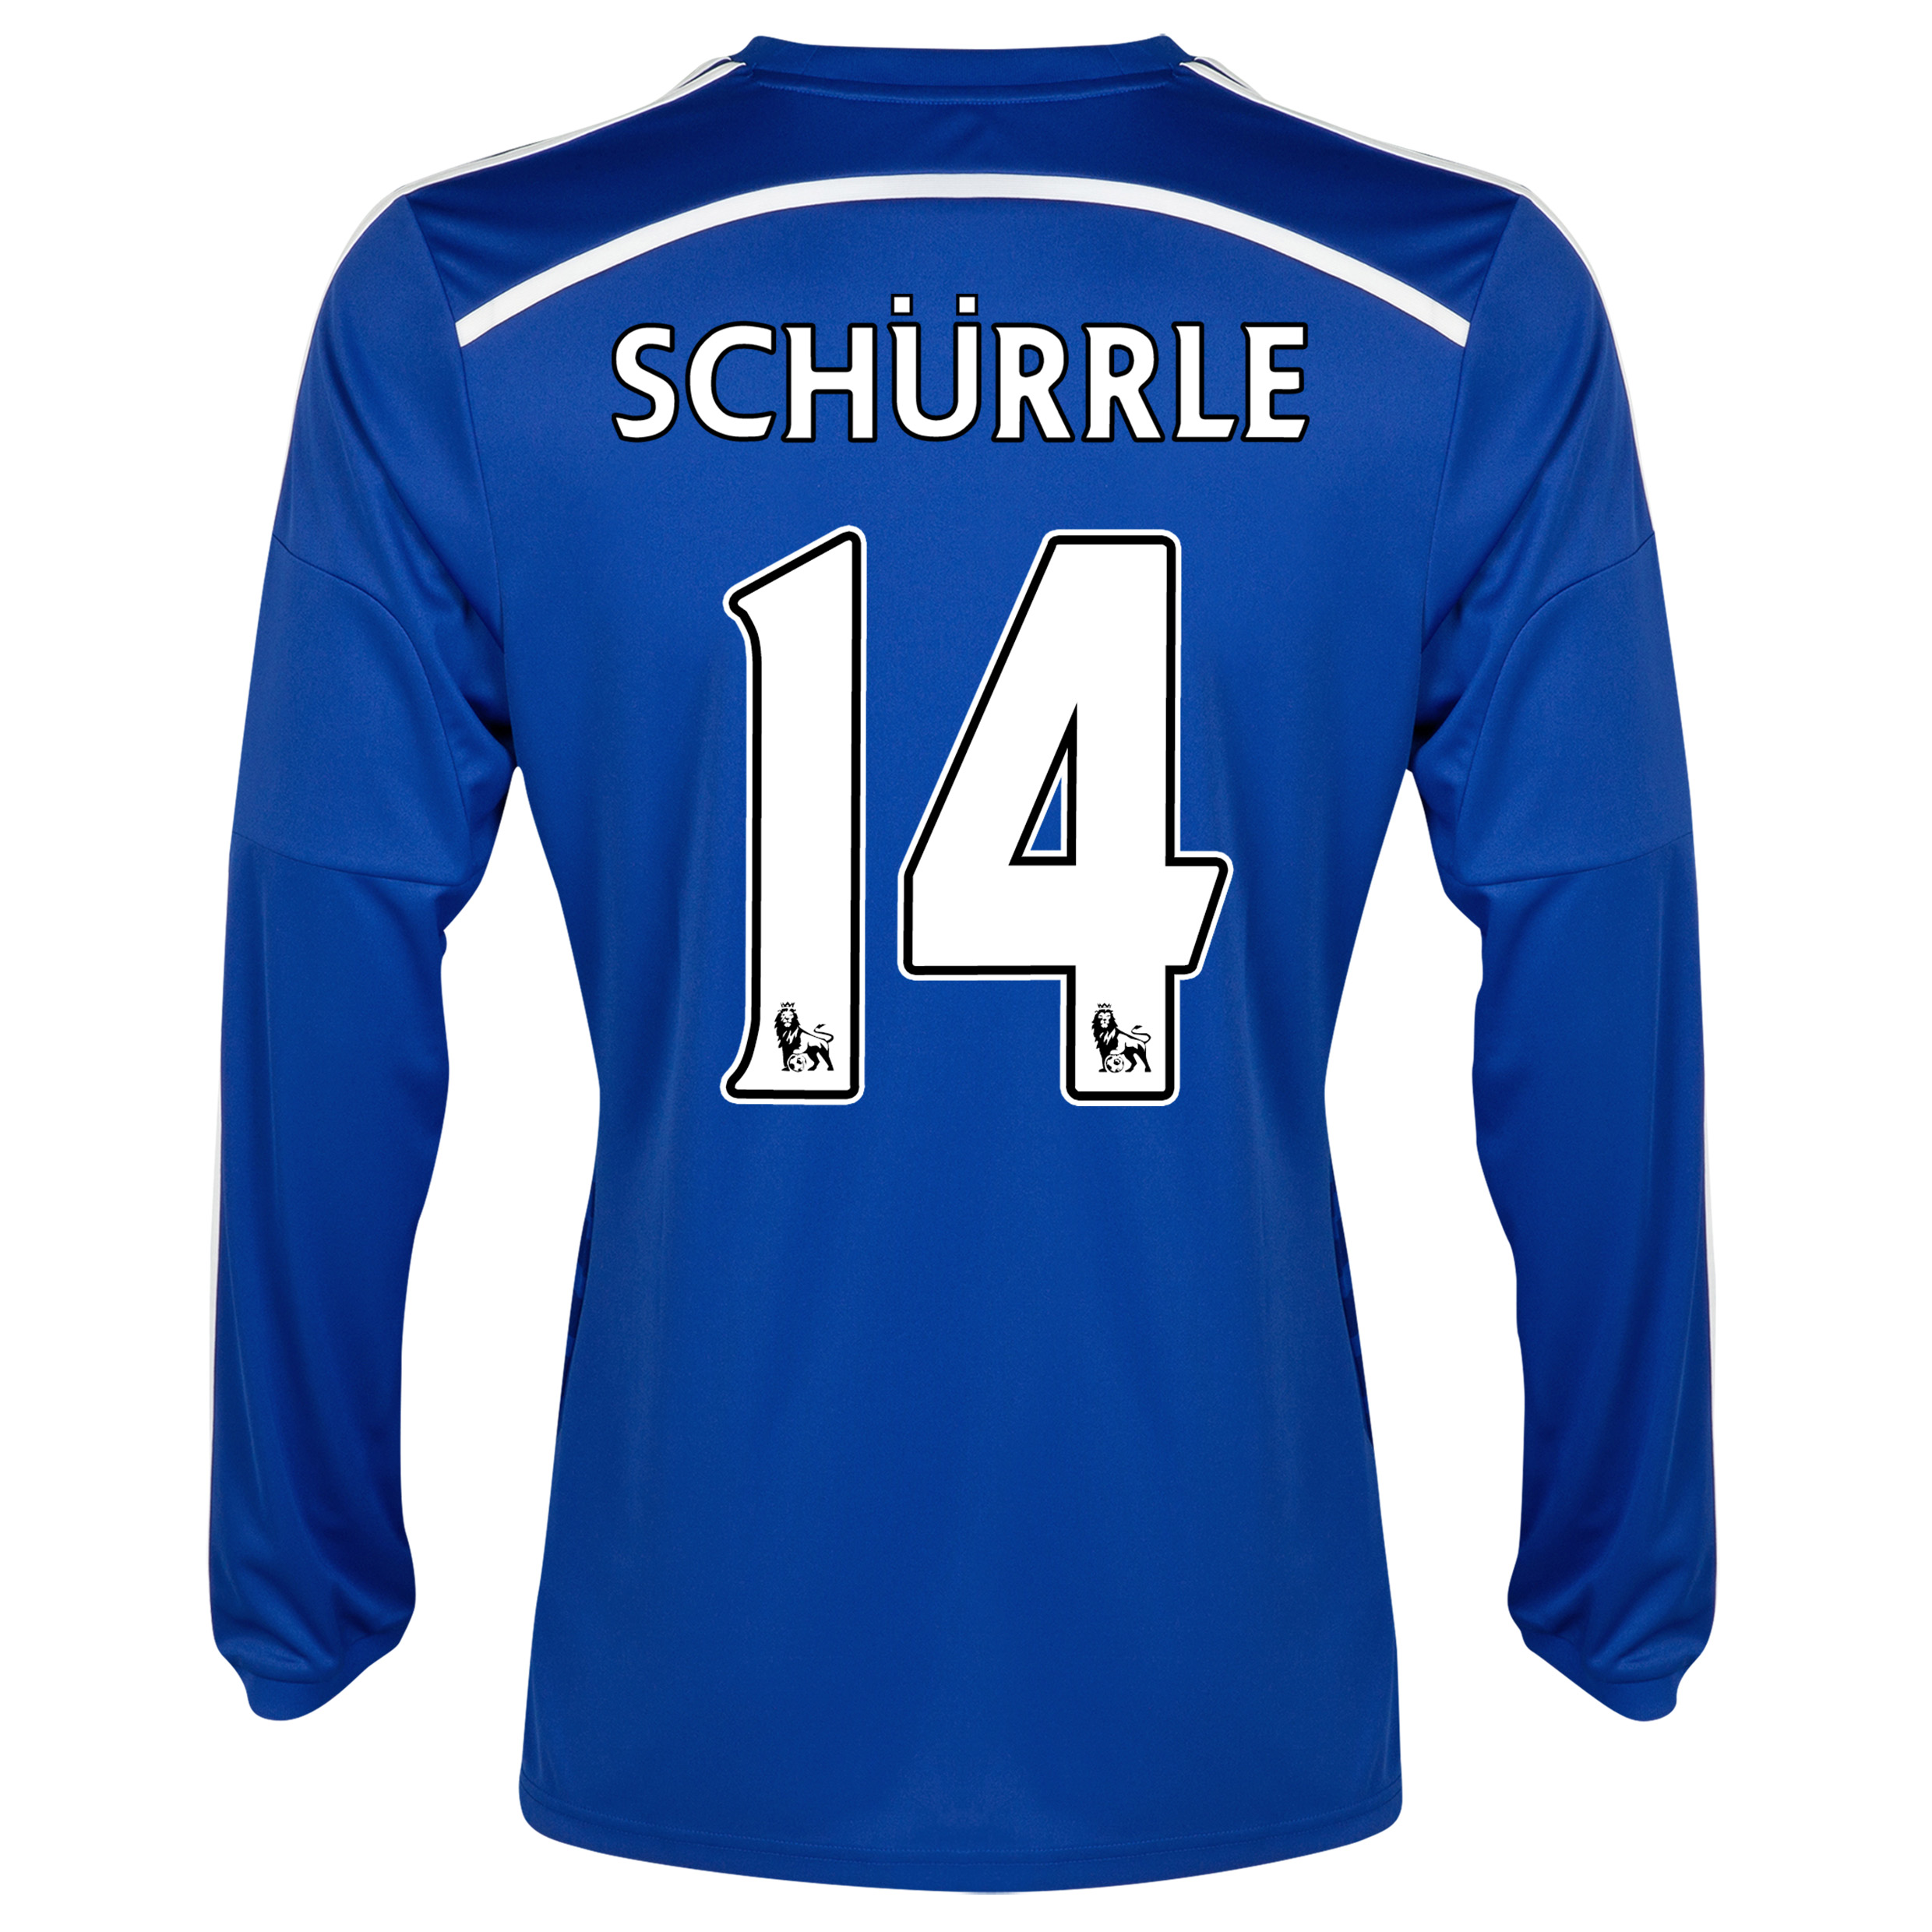 Chelsea Home Shirt 2014/15 - Long Sleeve - Kids Blue with Schurrle 14 printing